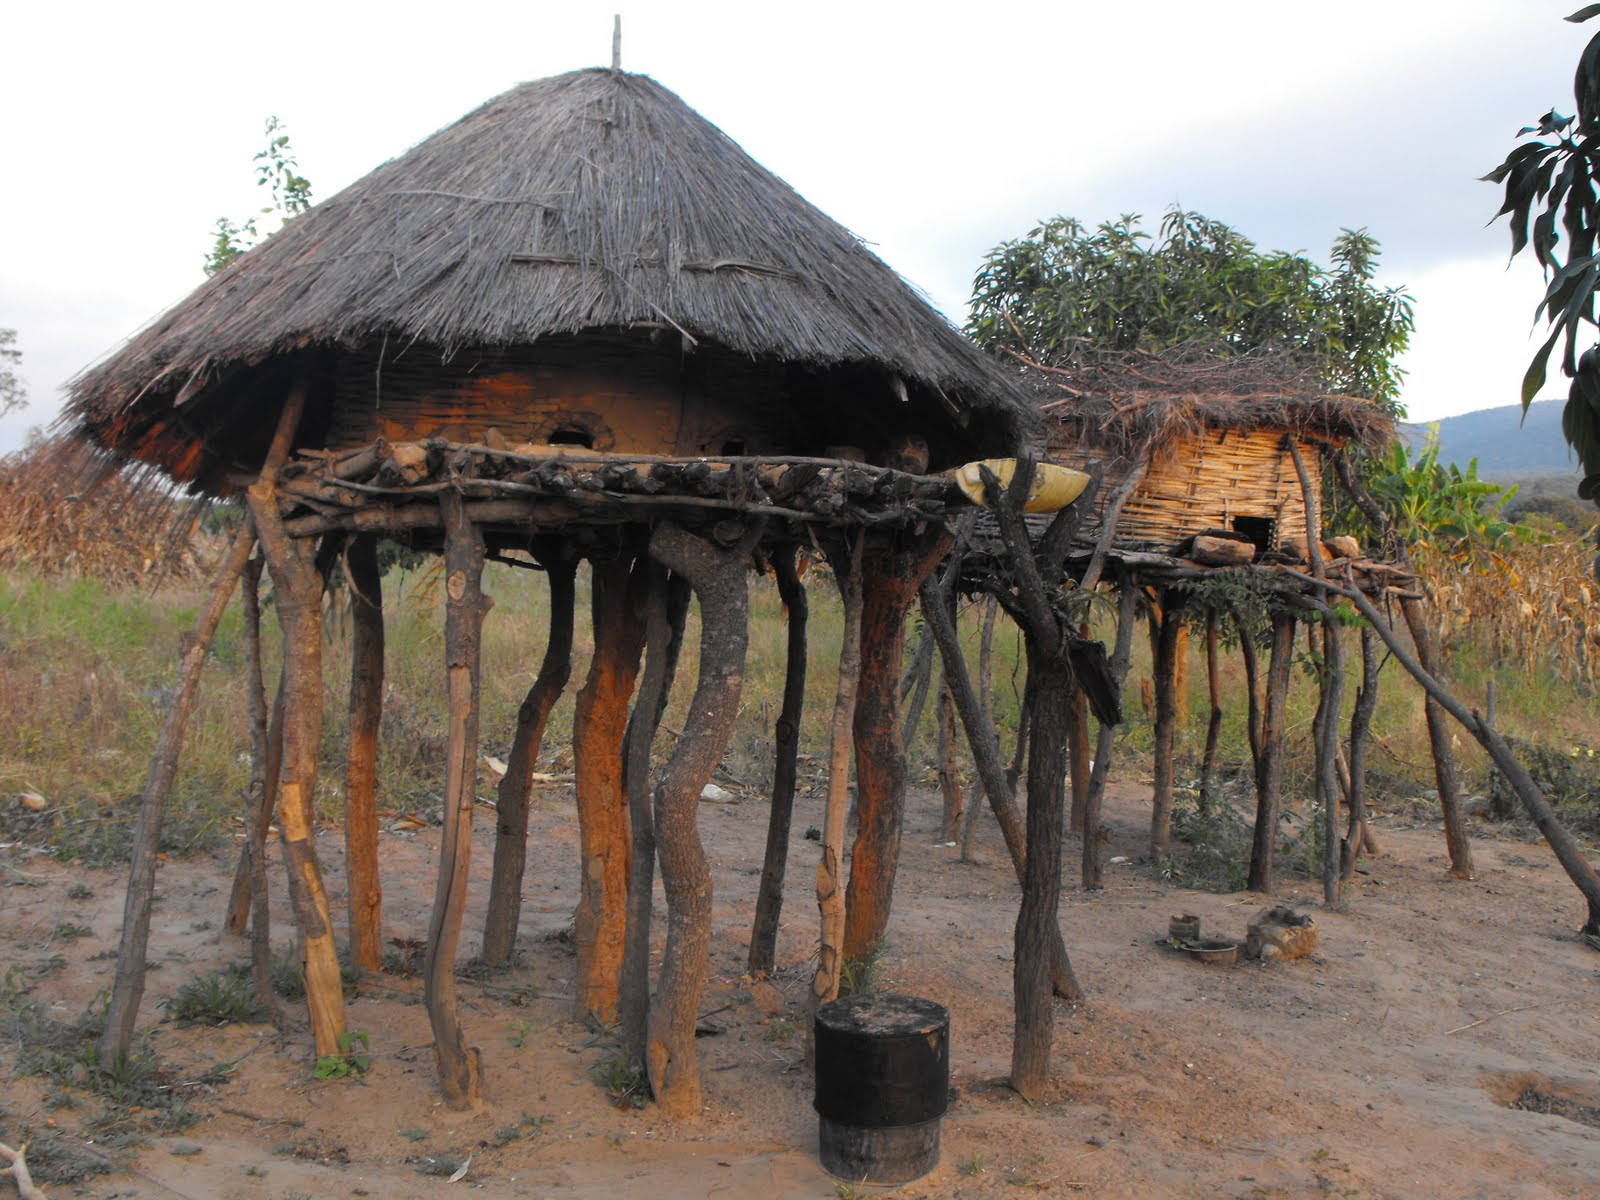 architecture vernacular african architectural huts adventure chicken africa south building houses traditional homes designs storage food